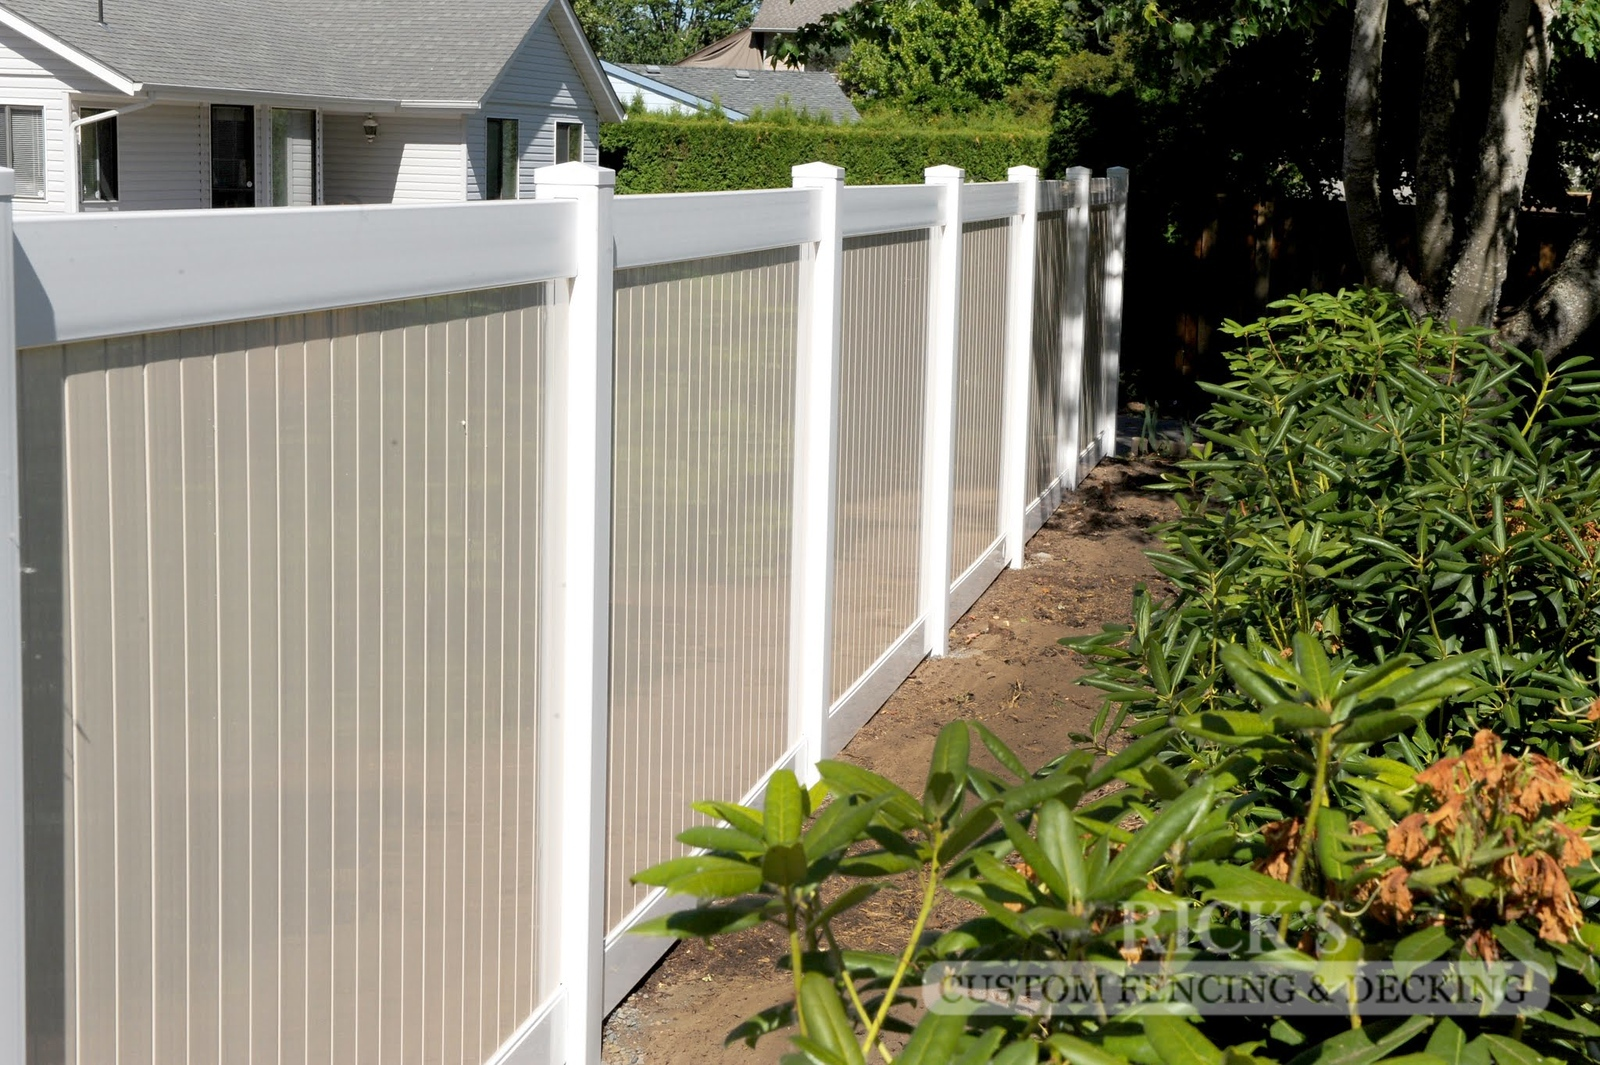 3025 - Vinyl Privacy Fencing